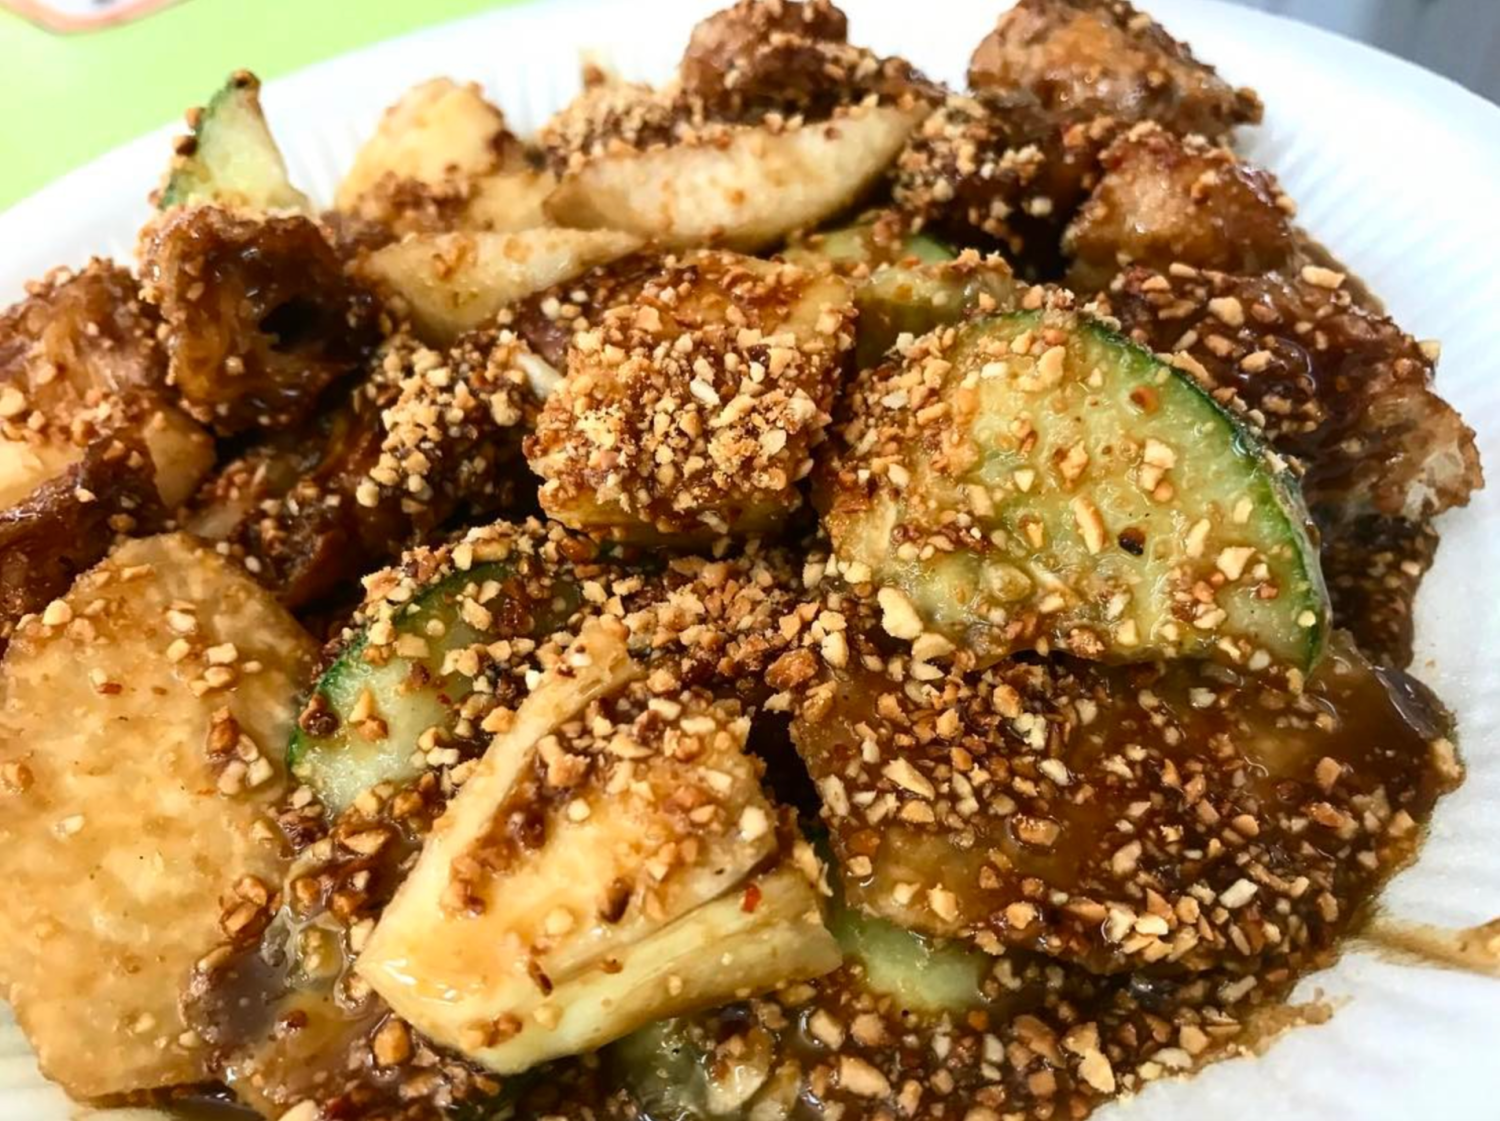 Rojak Buah remains to be a favourite snack among Singaporeans. Photo: sammekim